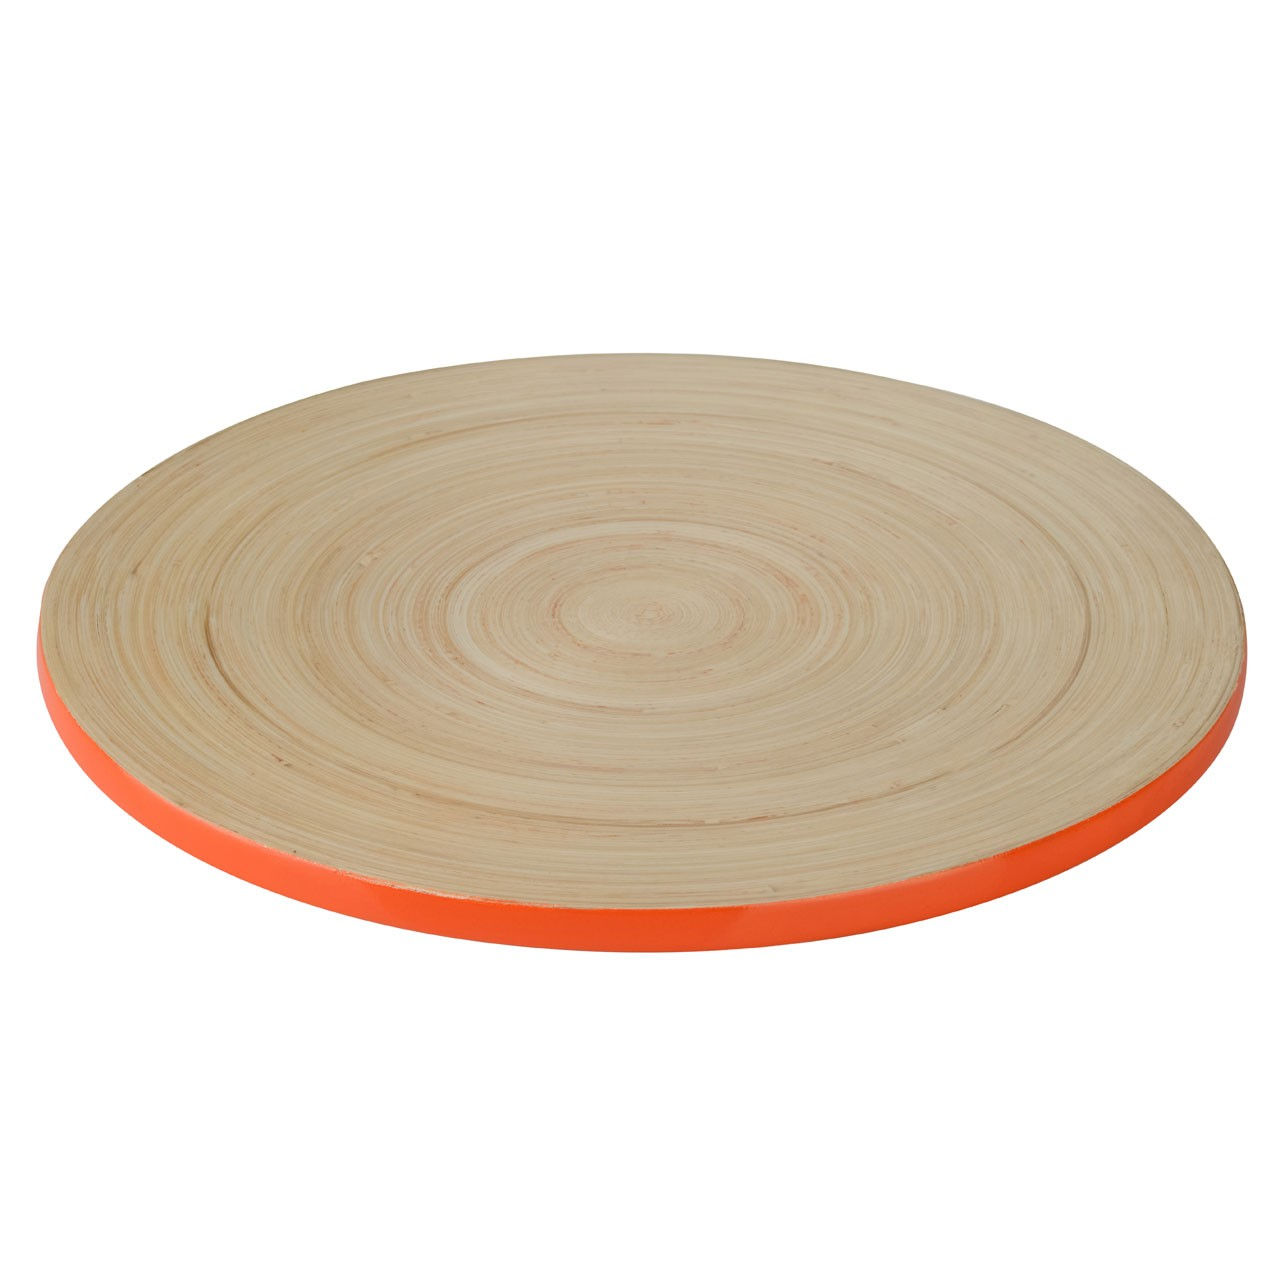 Kyoto Spun Bamboo Placemat - Orange